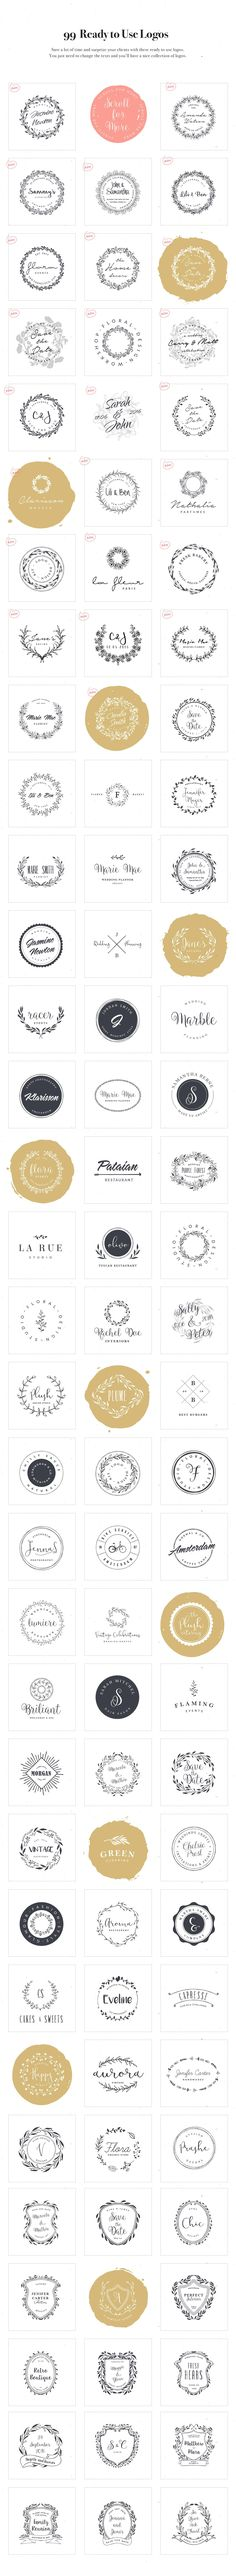 Logo Design Kit • Available here → https://creativemarket.com/VladCristea/573841-Logo-Design-Kit?u=pxcr